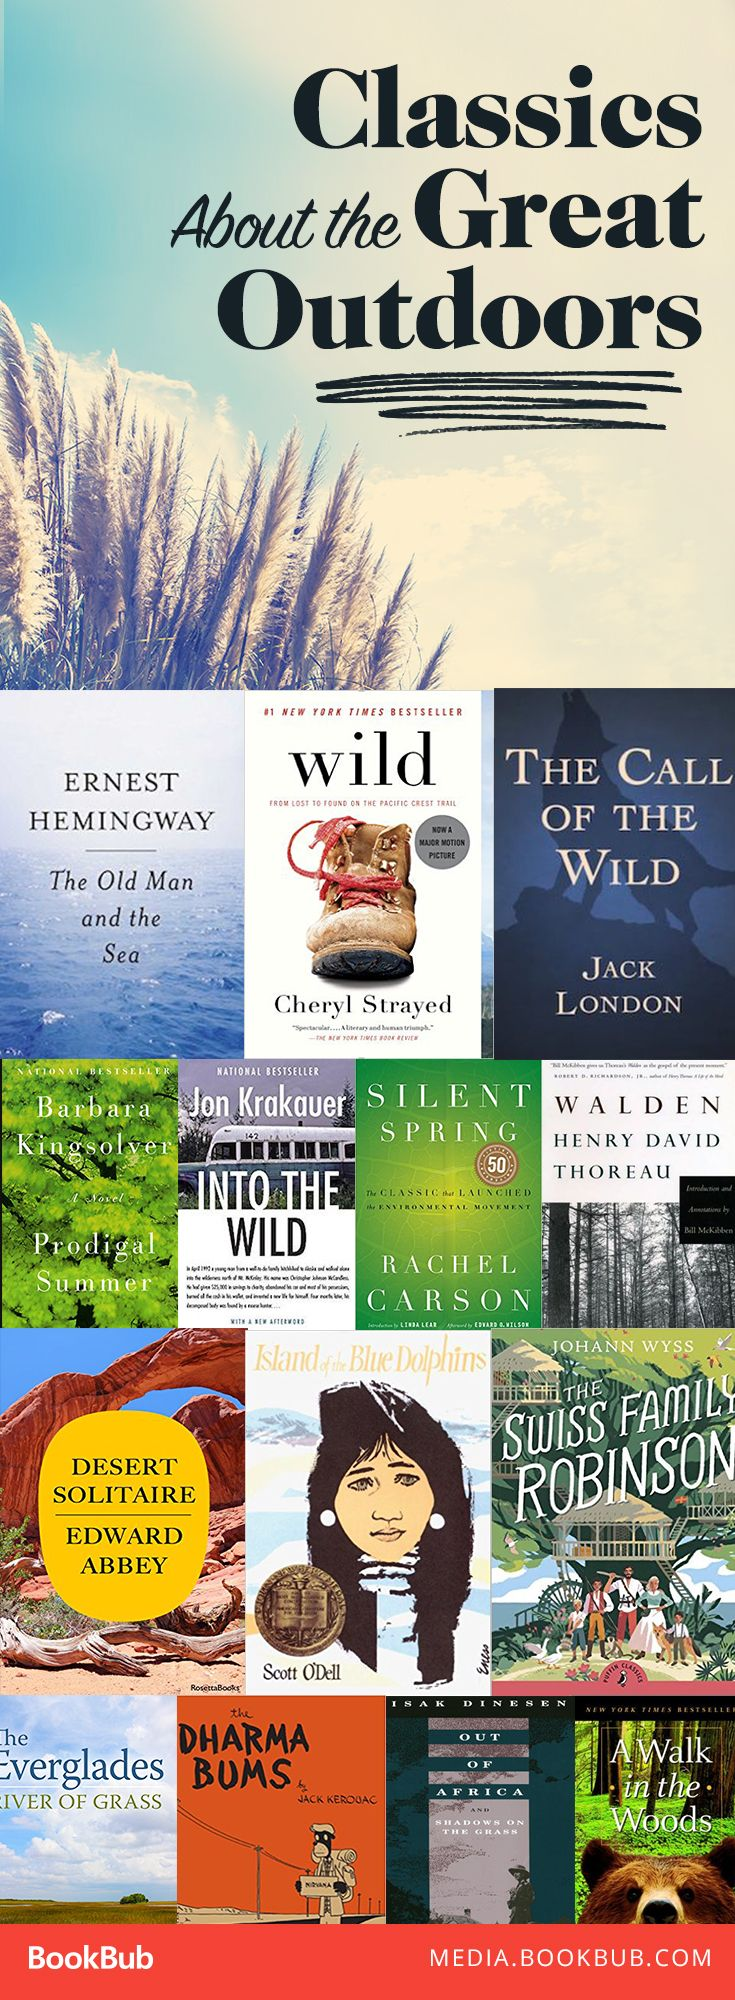 15 classic books to read about the great outdoors. This list includes some of the best literature about nature and adventure.